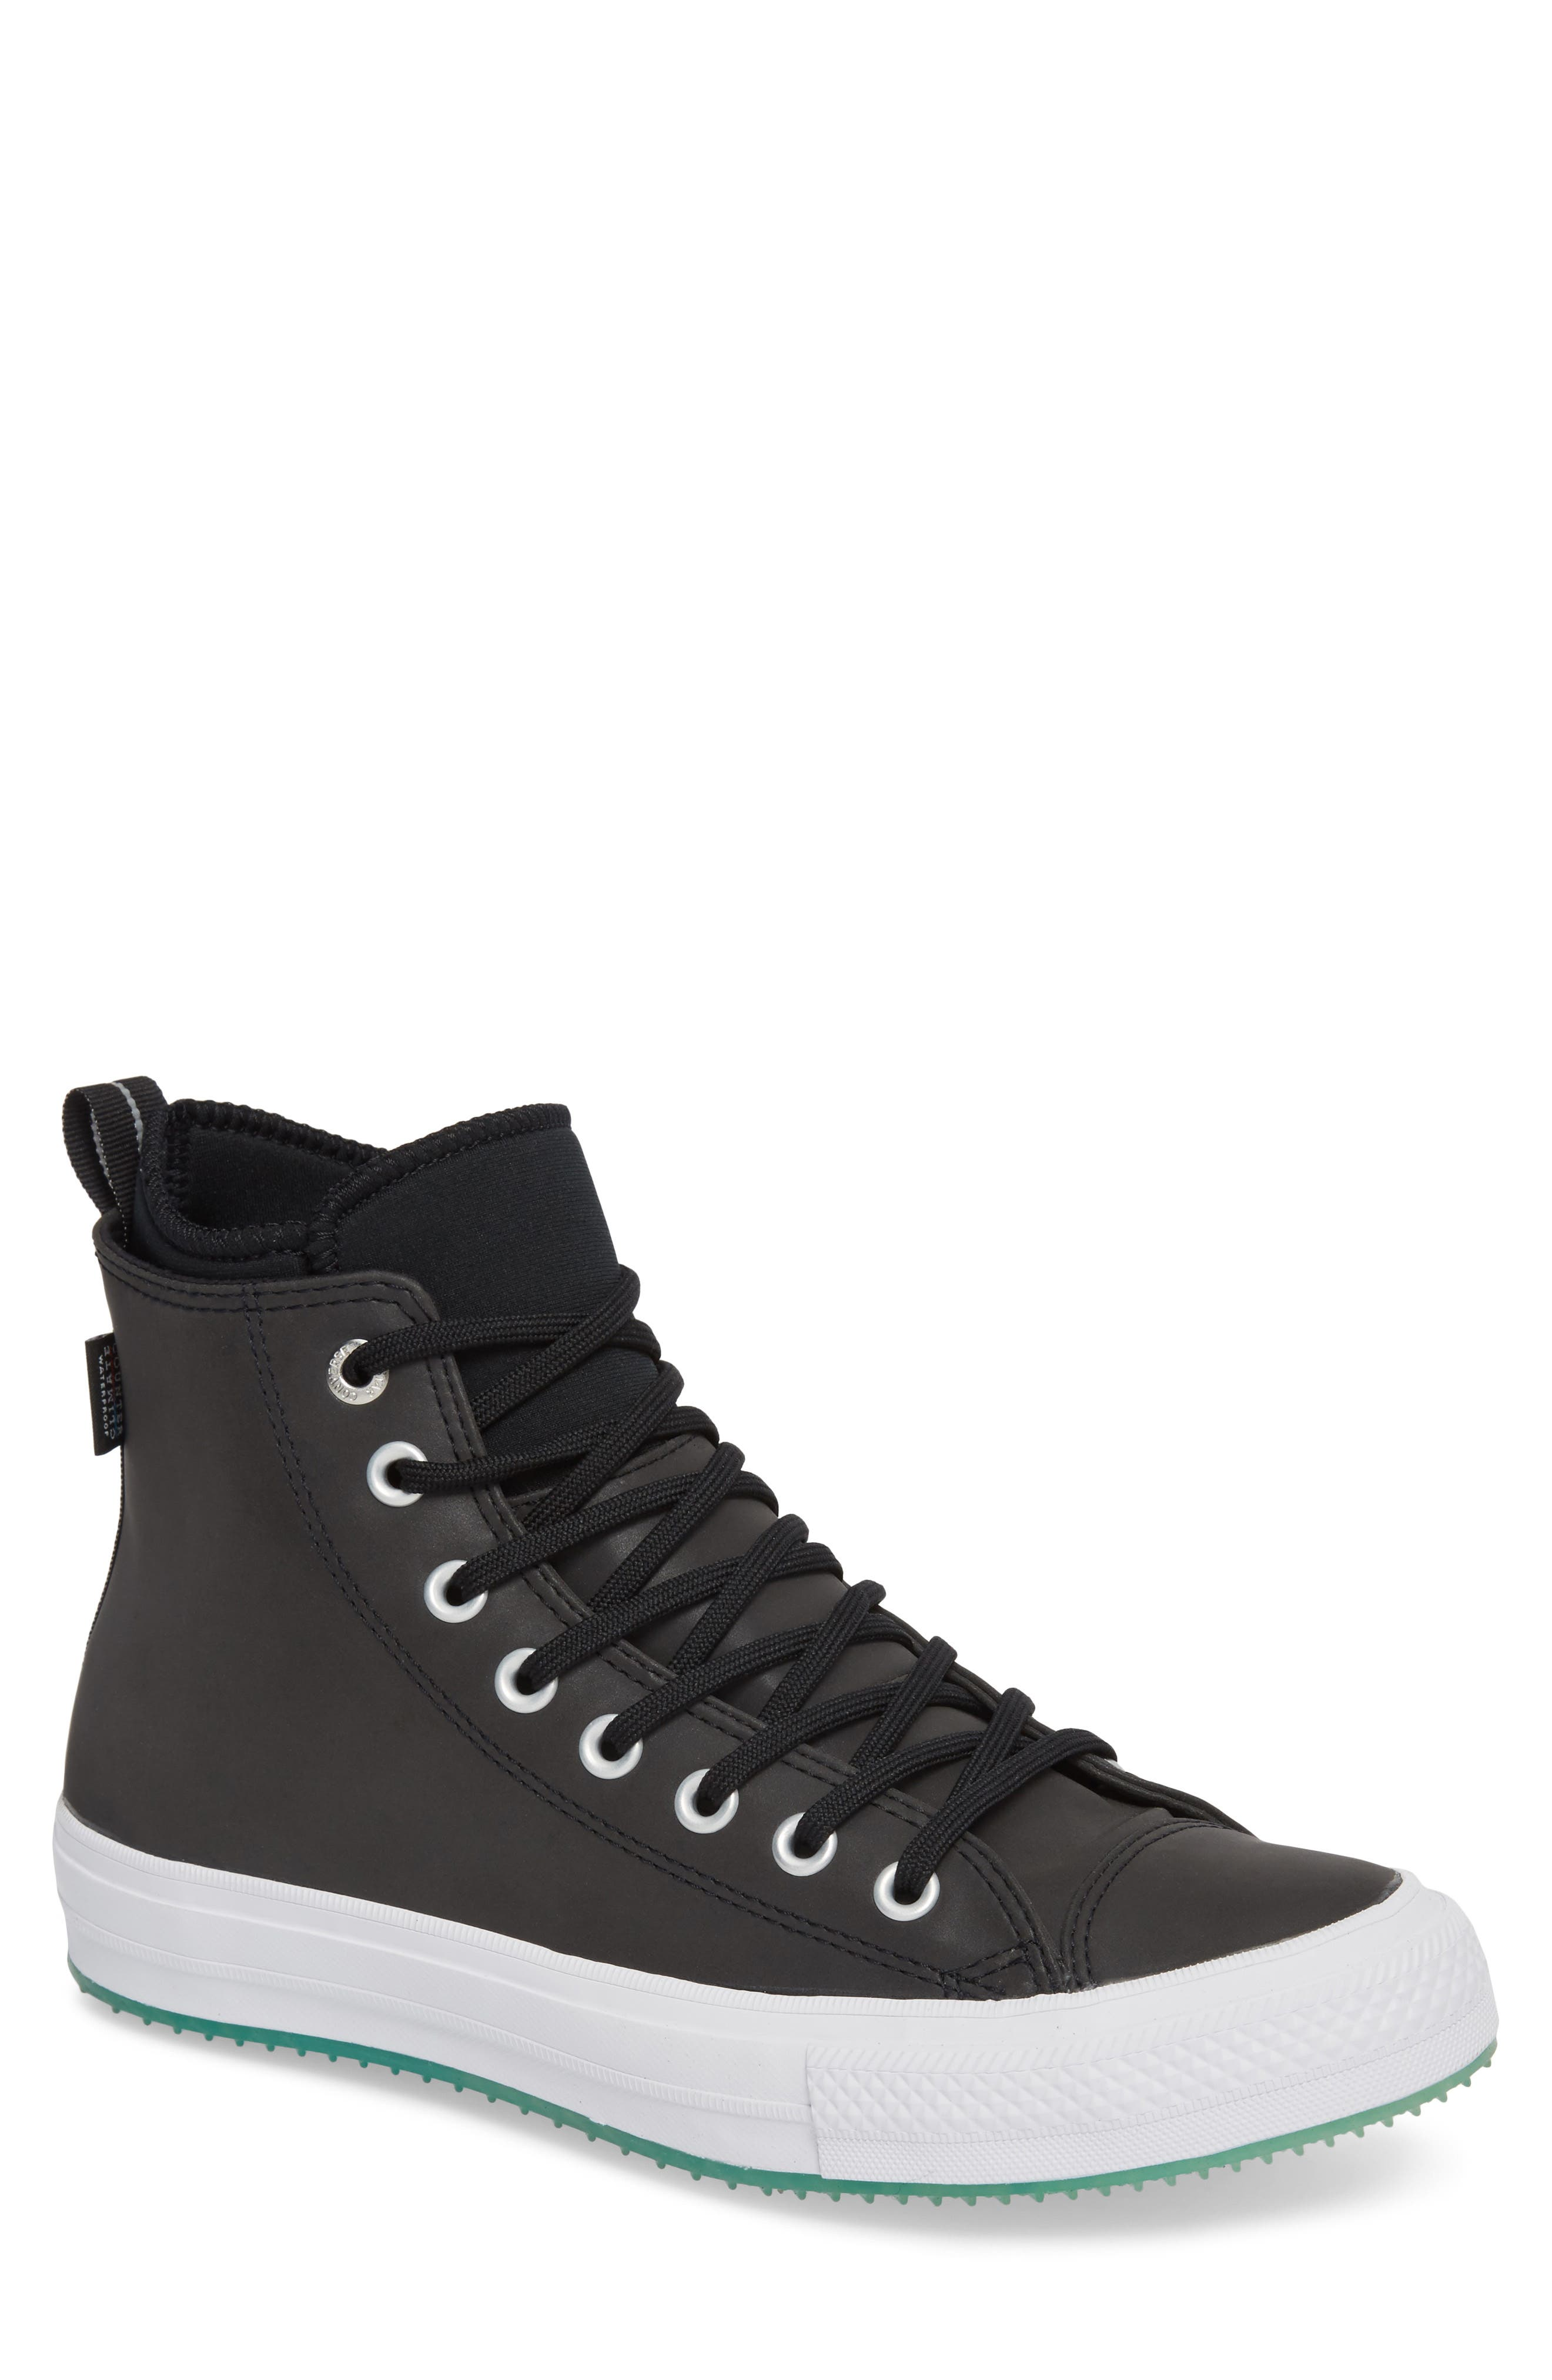 Chuck Taylor<sup>®</sup> All Star<sup>®</sup> Counter Climate Waterproof Sneaker,                         Main,                         color, Black